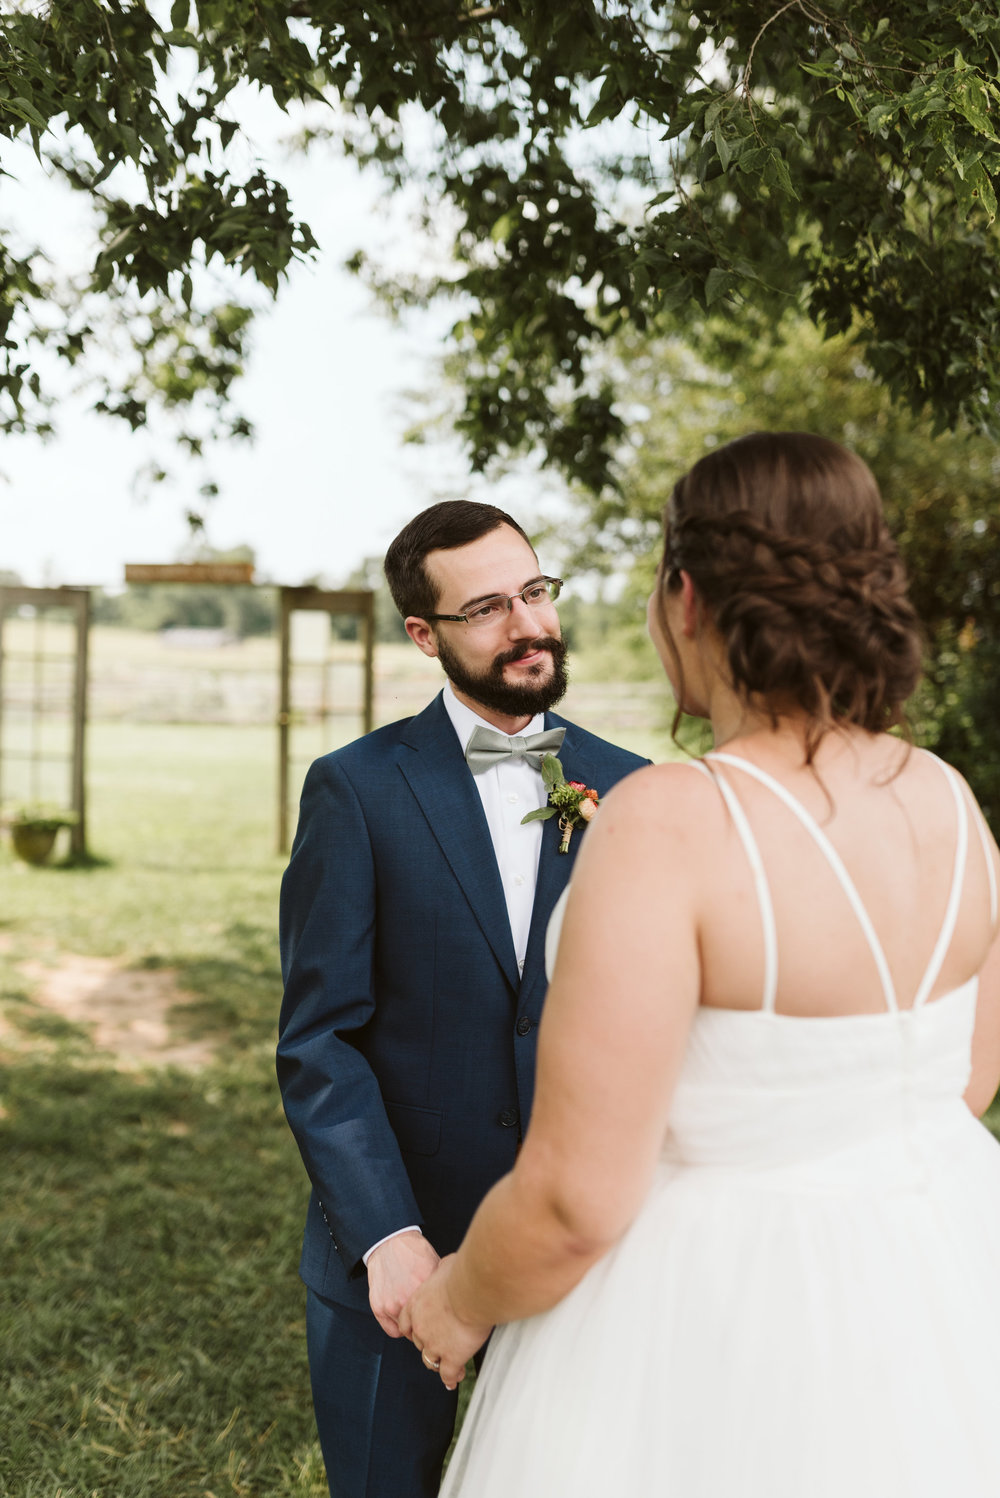 Rocklands Farm, Maryland, Intimate Wedding, Baltimore Wedding Photographer, Sungold Flower Co, Rustic, Romantic, Barn Wedding, Groom Looking Lovingly at Bride